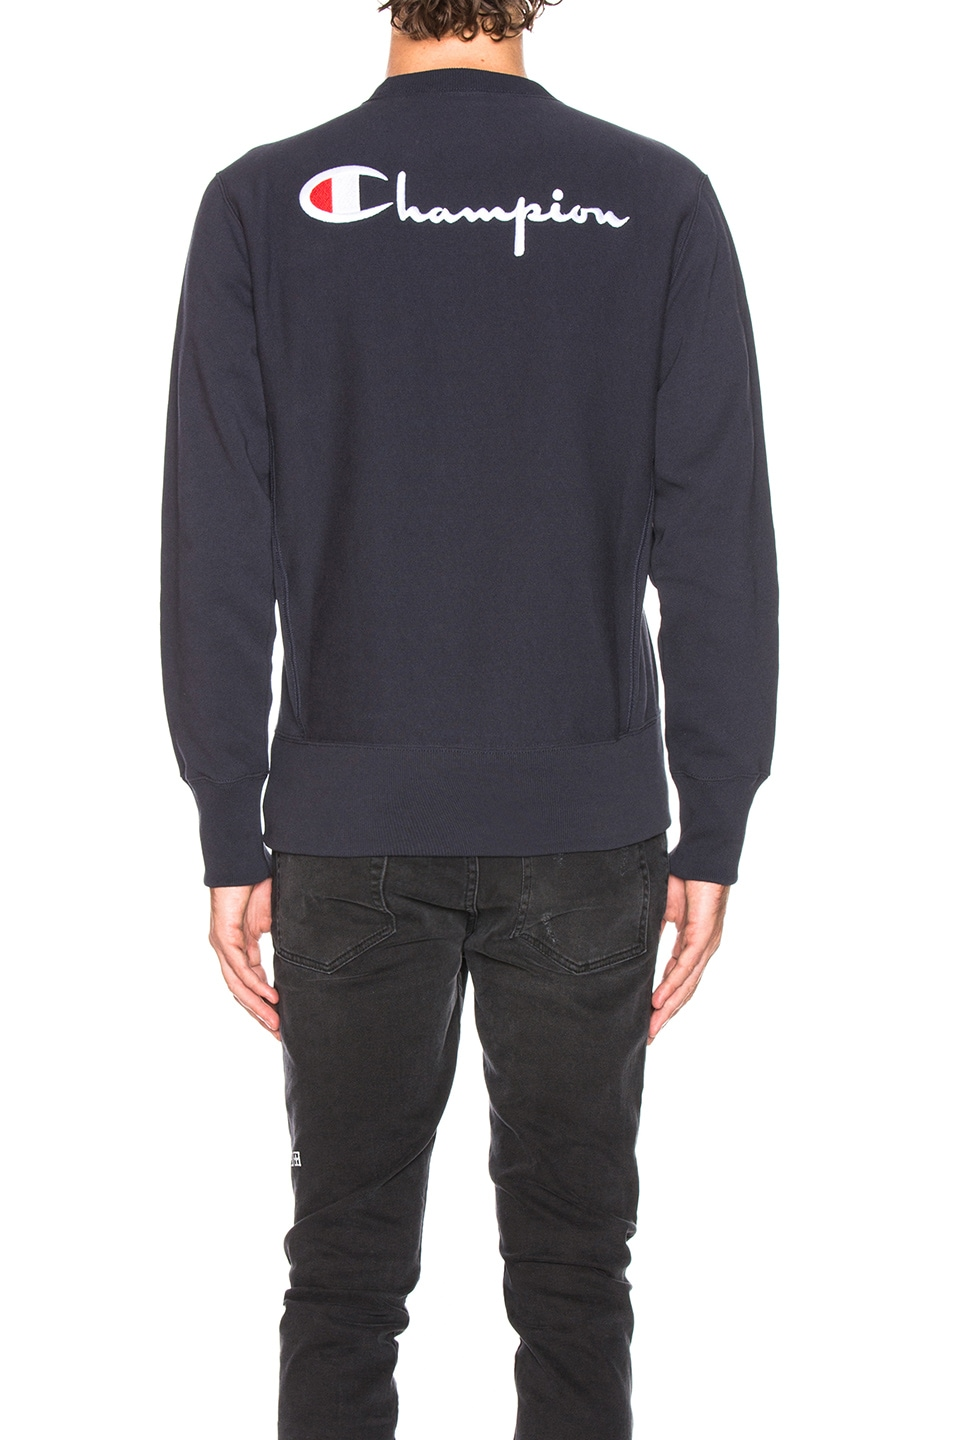 Image 4 of Champion Reverse Weave Crewneck Sweatshirt in Navy